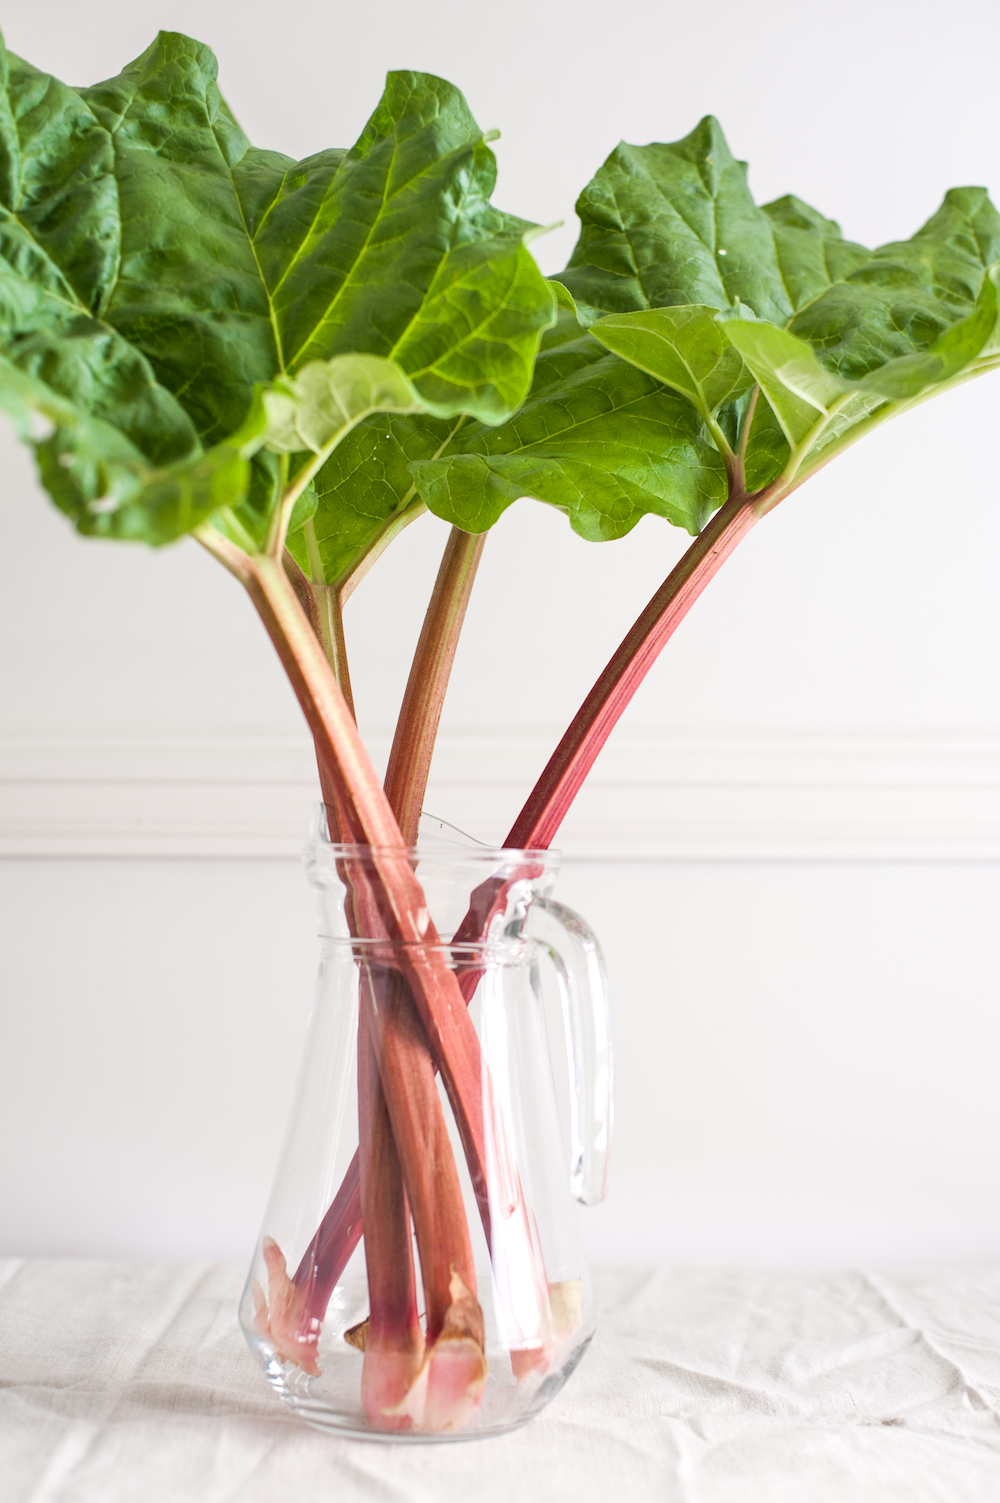 Rhubarb stalks in glass vase against white background